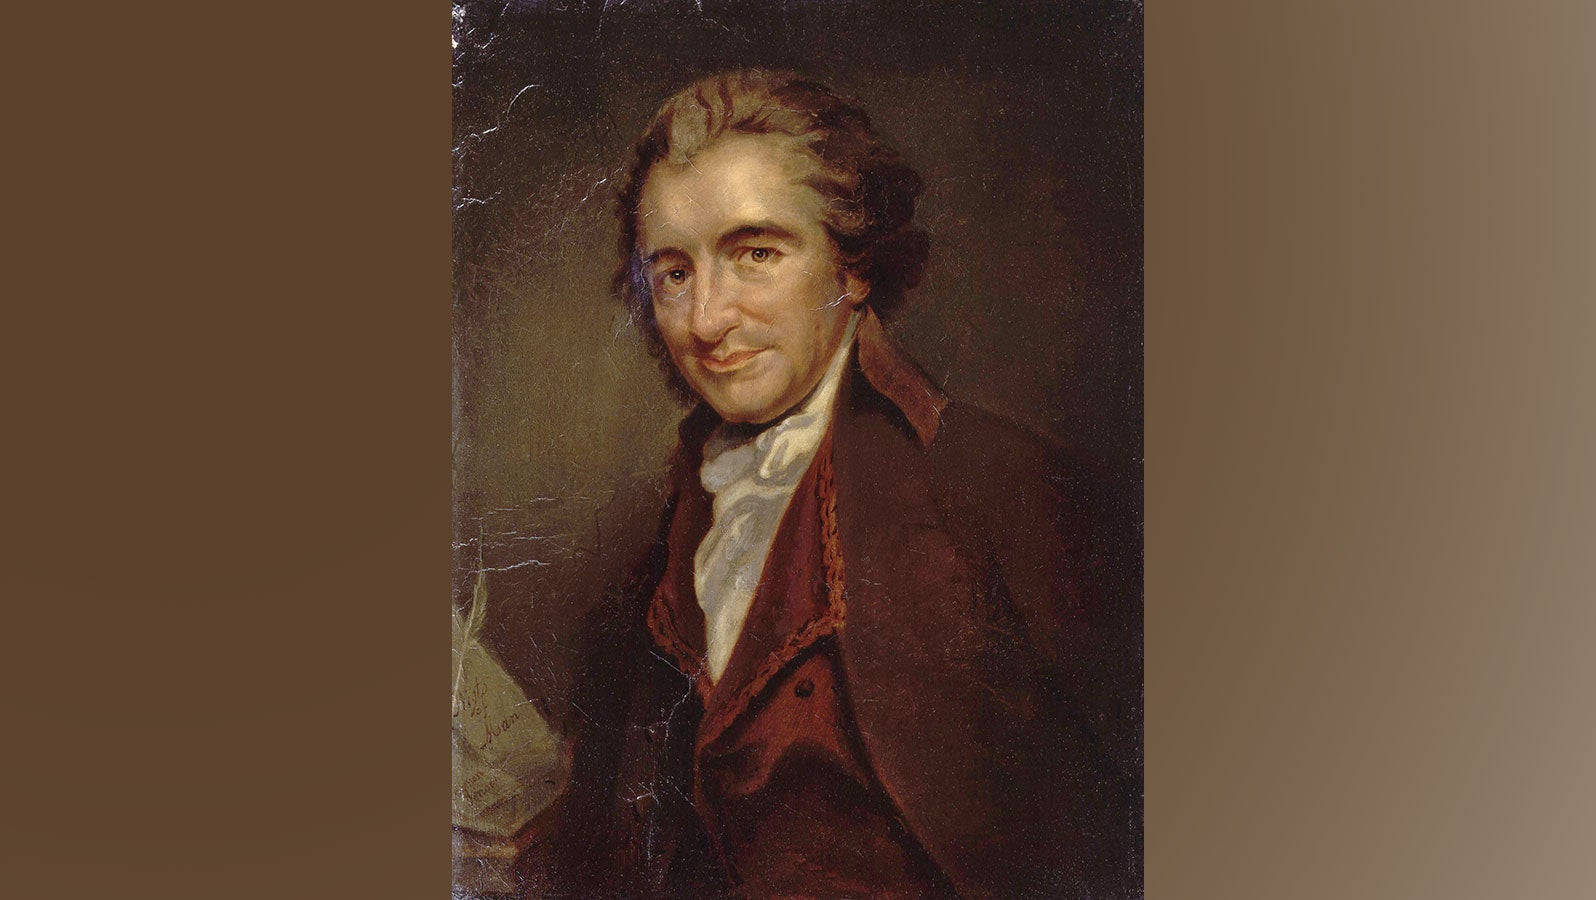 an oil painting of Thomas Paine